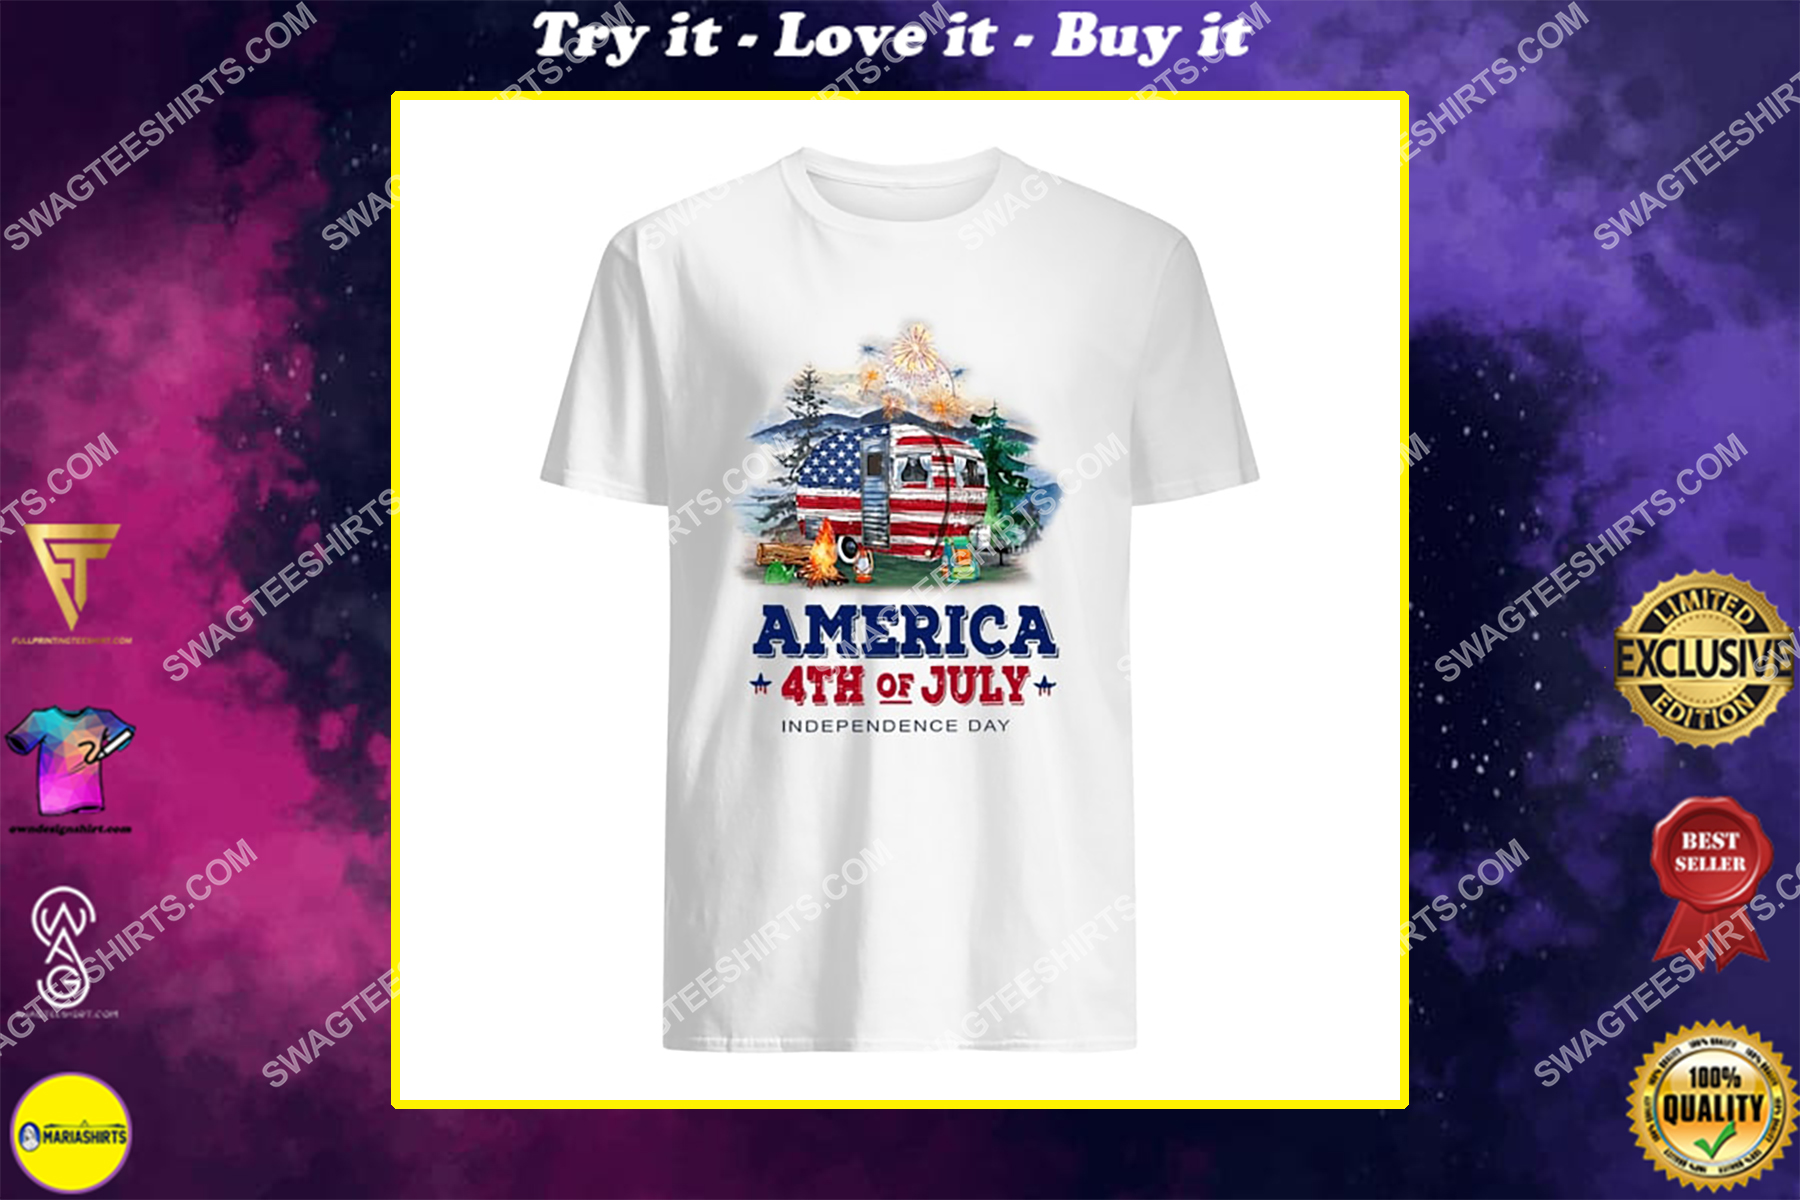 america 4th of july independence day for camping shirt